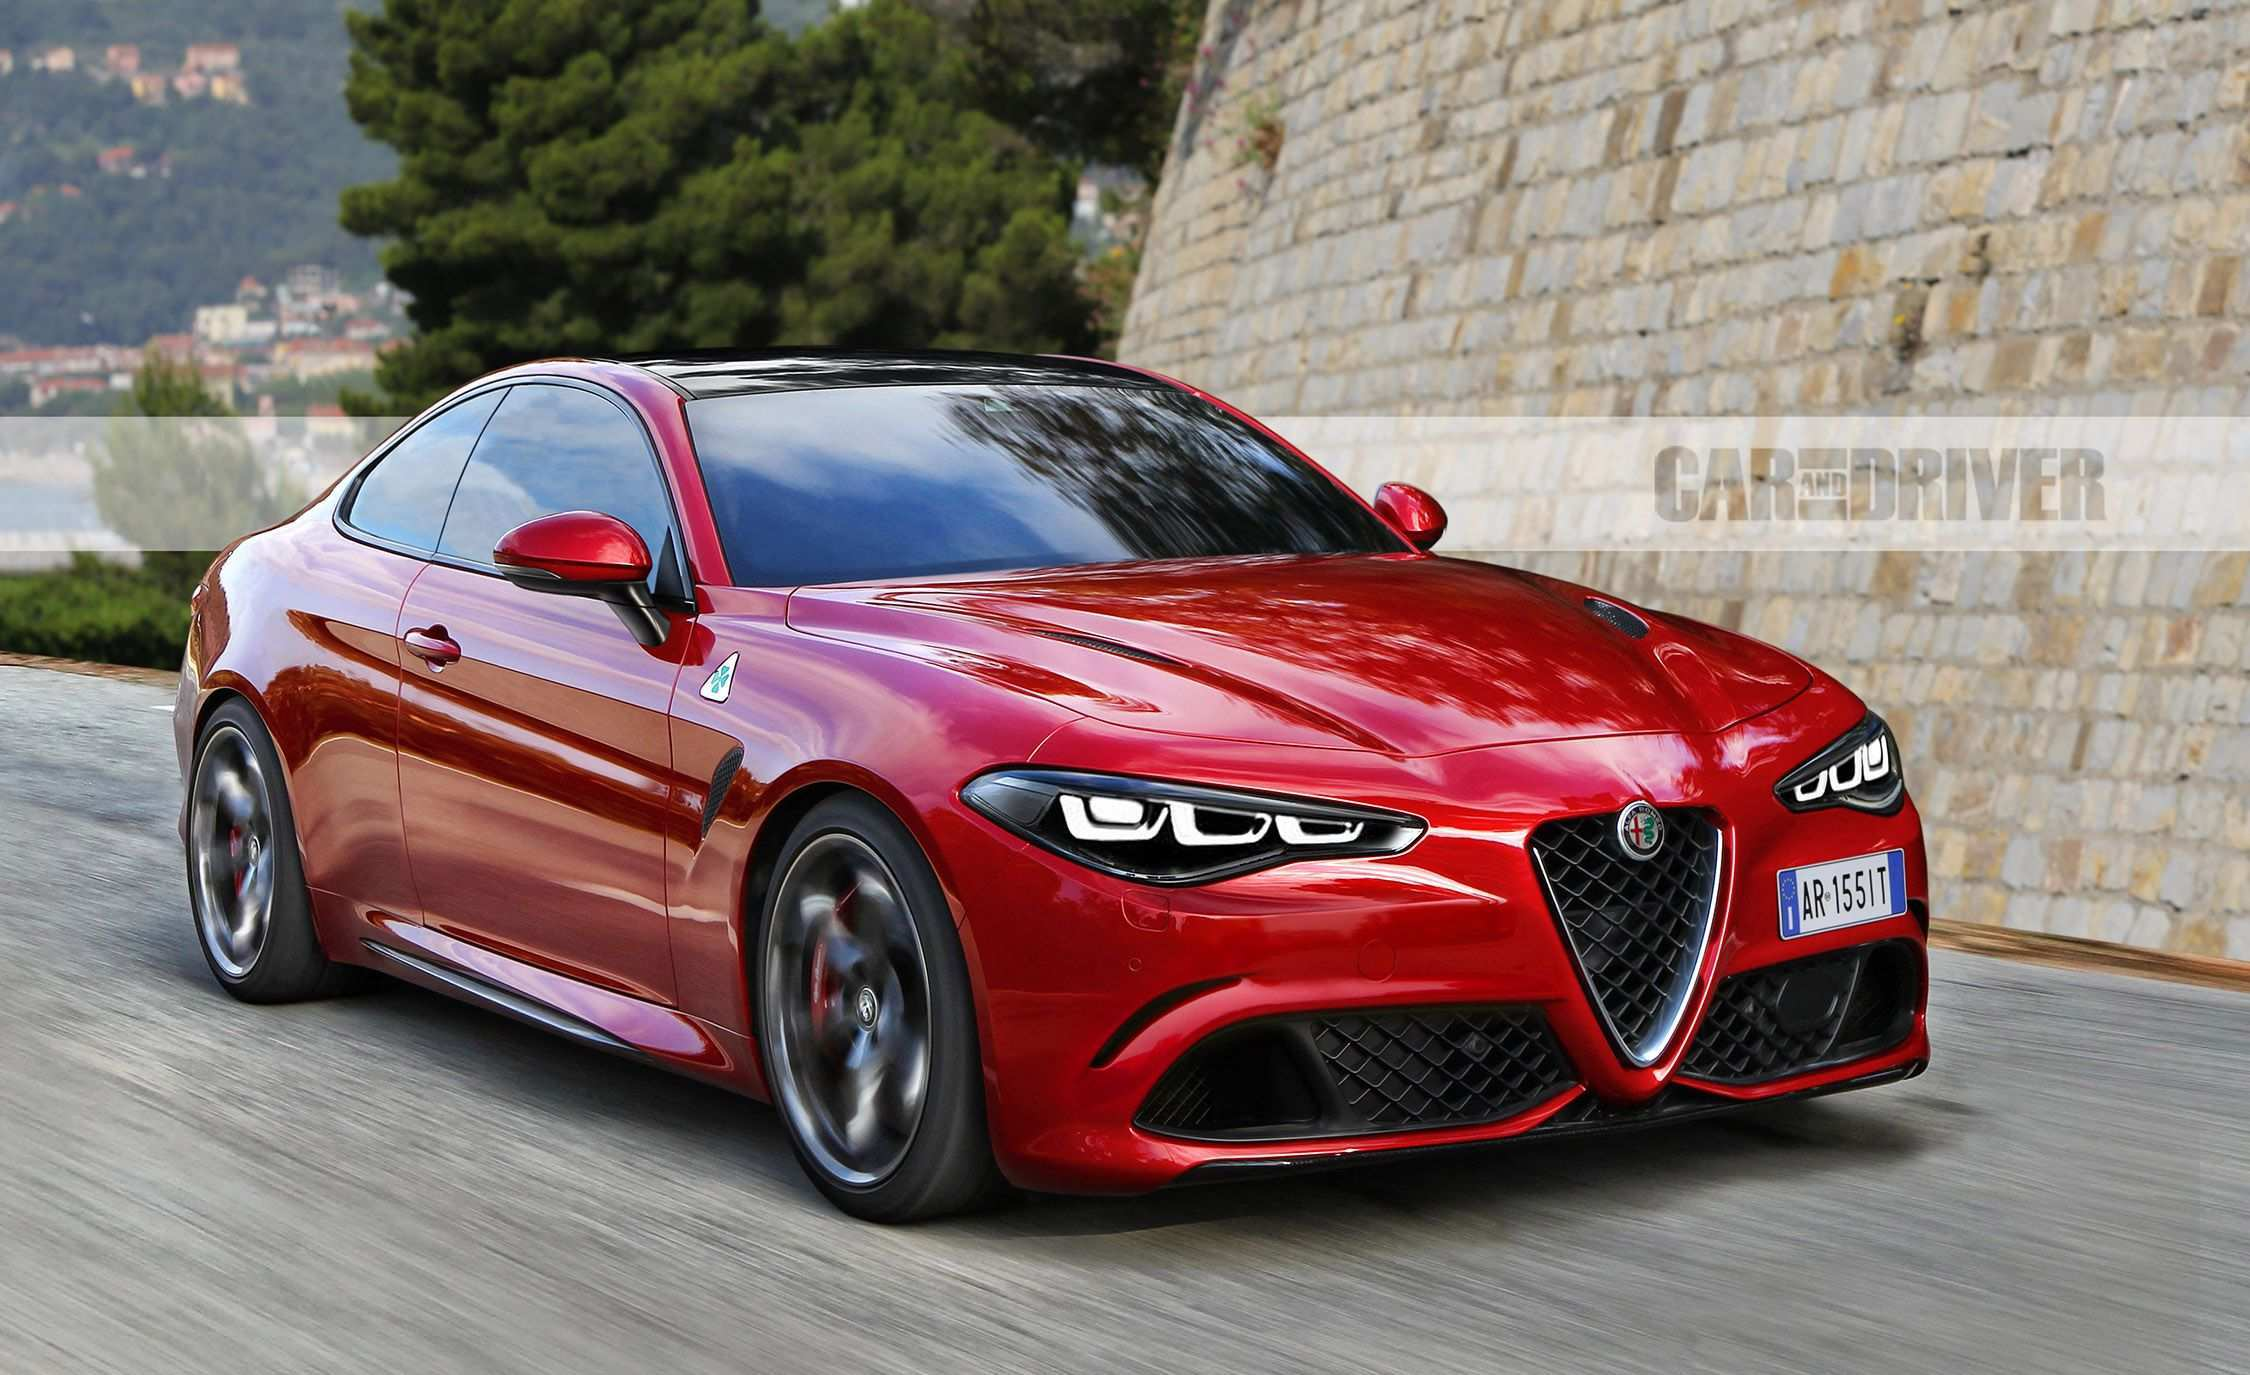 37 Concept of Alfa Spider 2020 New Review with Alfa Spider 2020